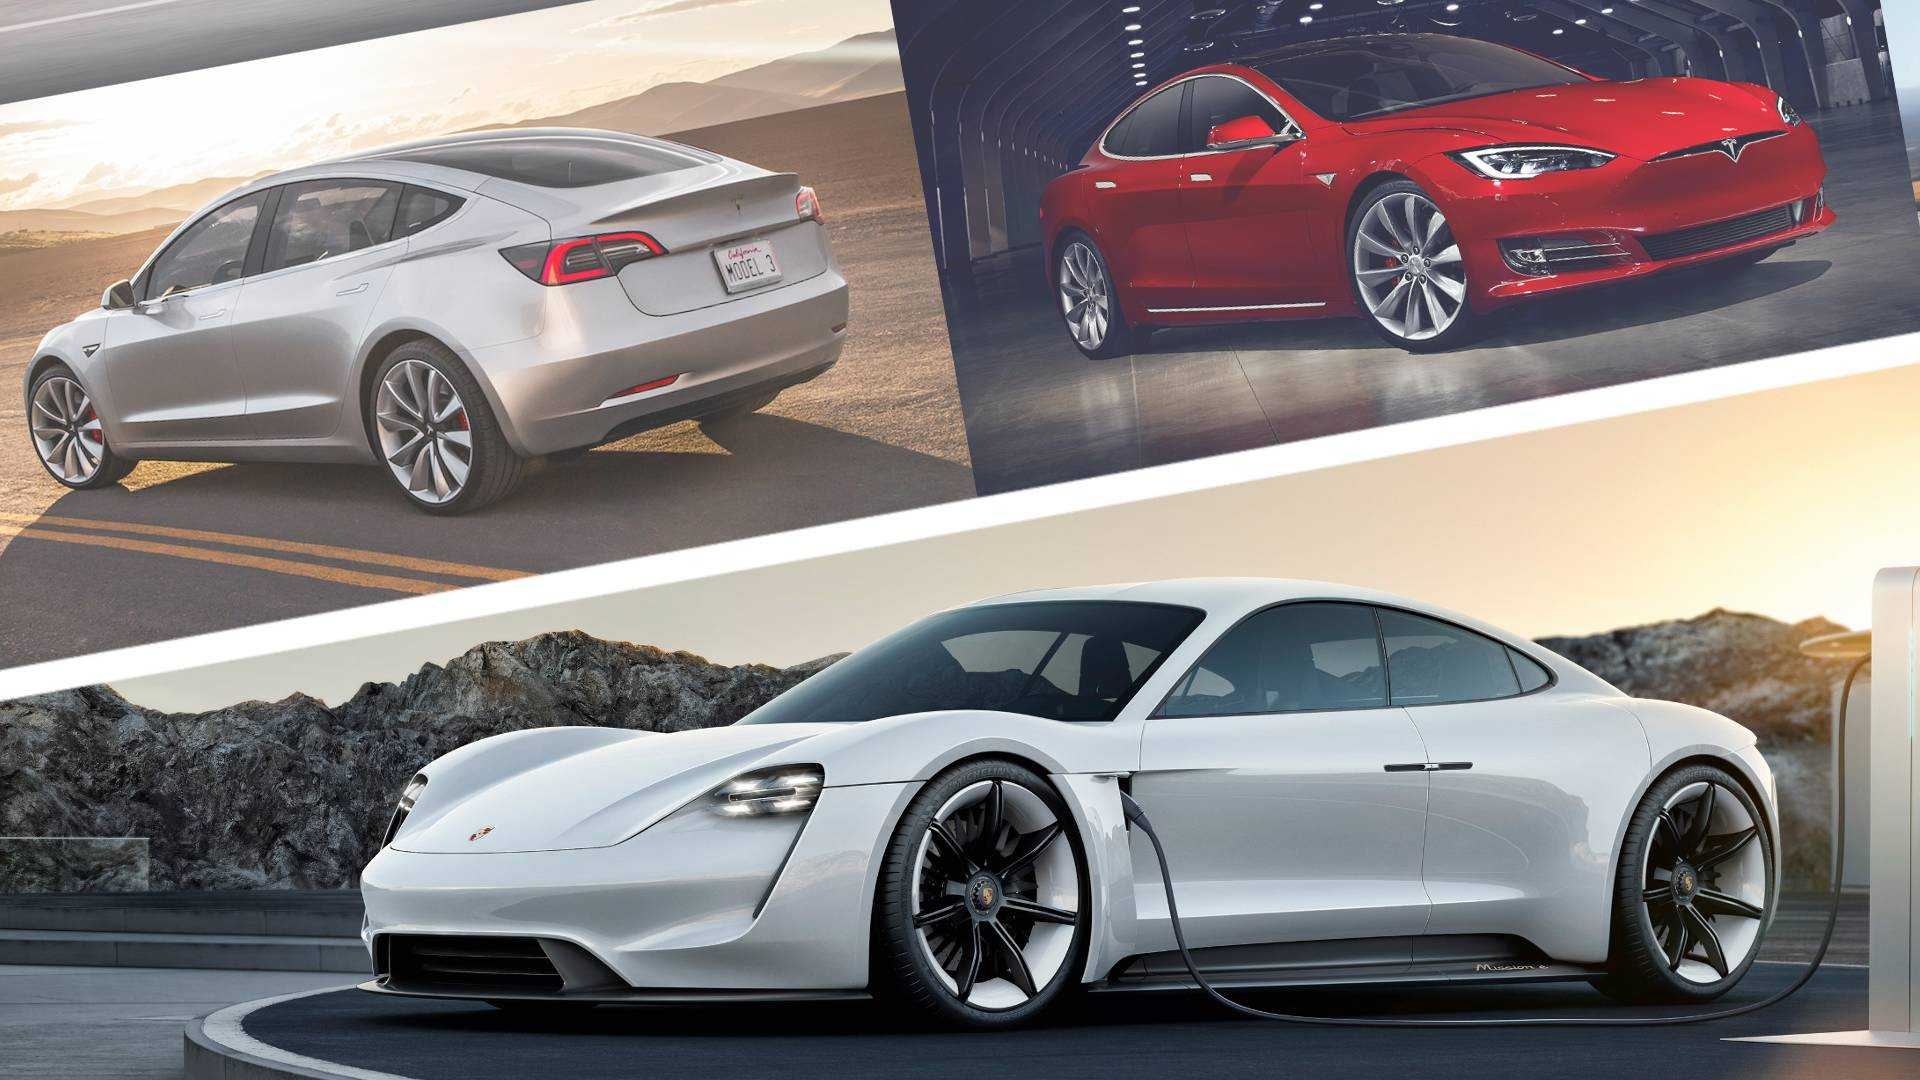 2020 Porsche Taycan Vs Tesla Model S Model 3 How Do They Compare